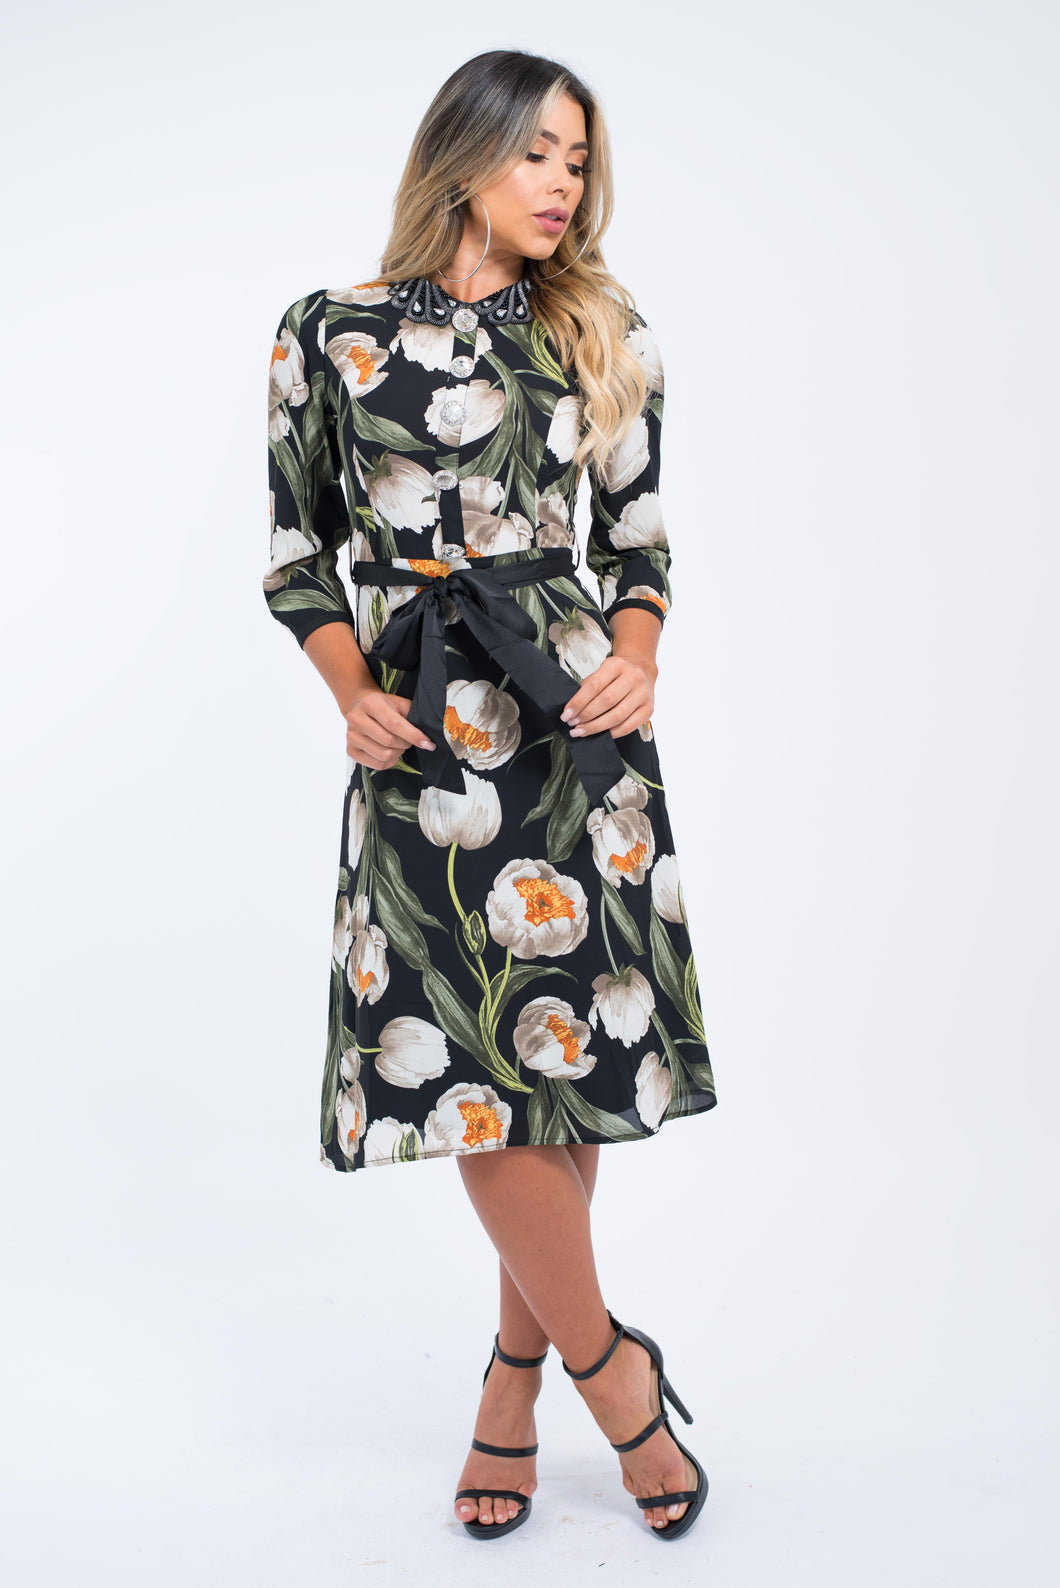 Peony Print Midi Dress With Jewel Collar & Buttons